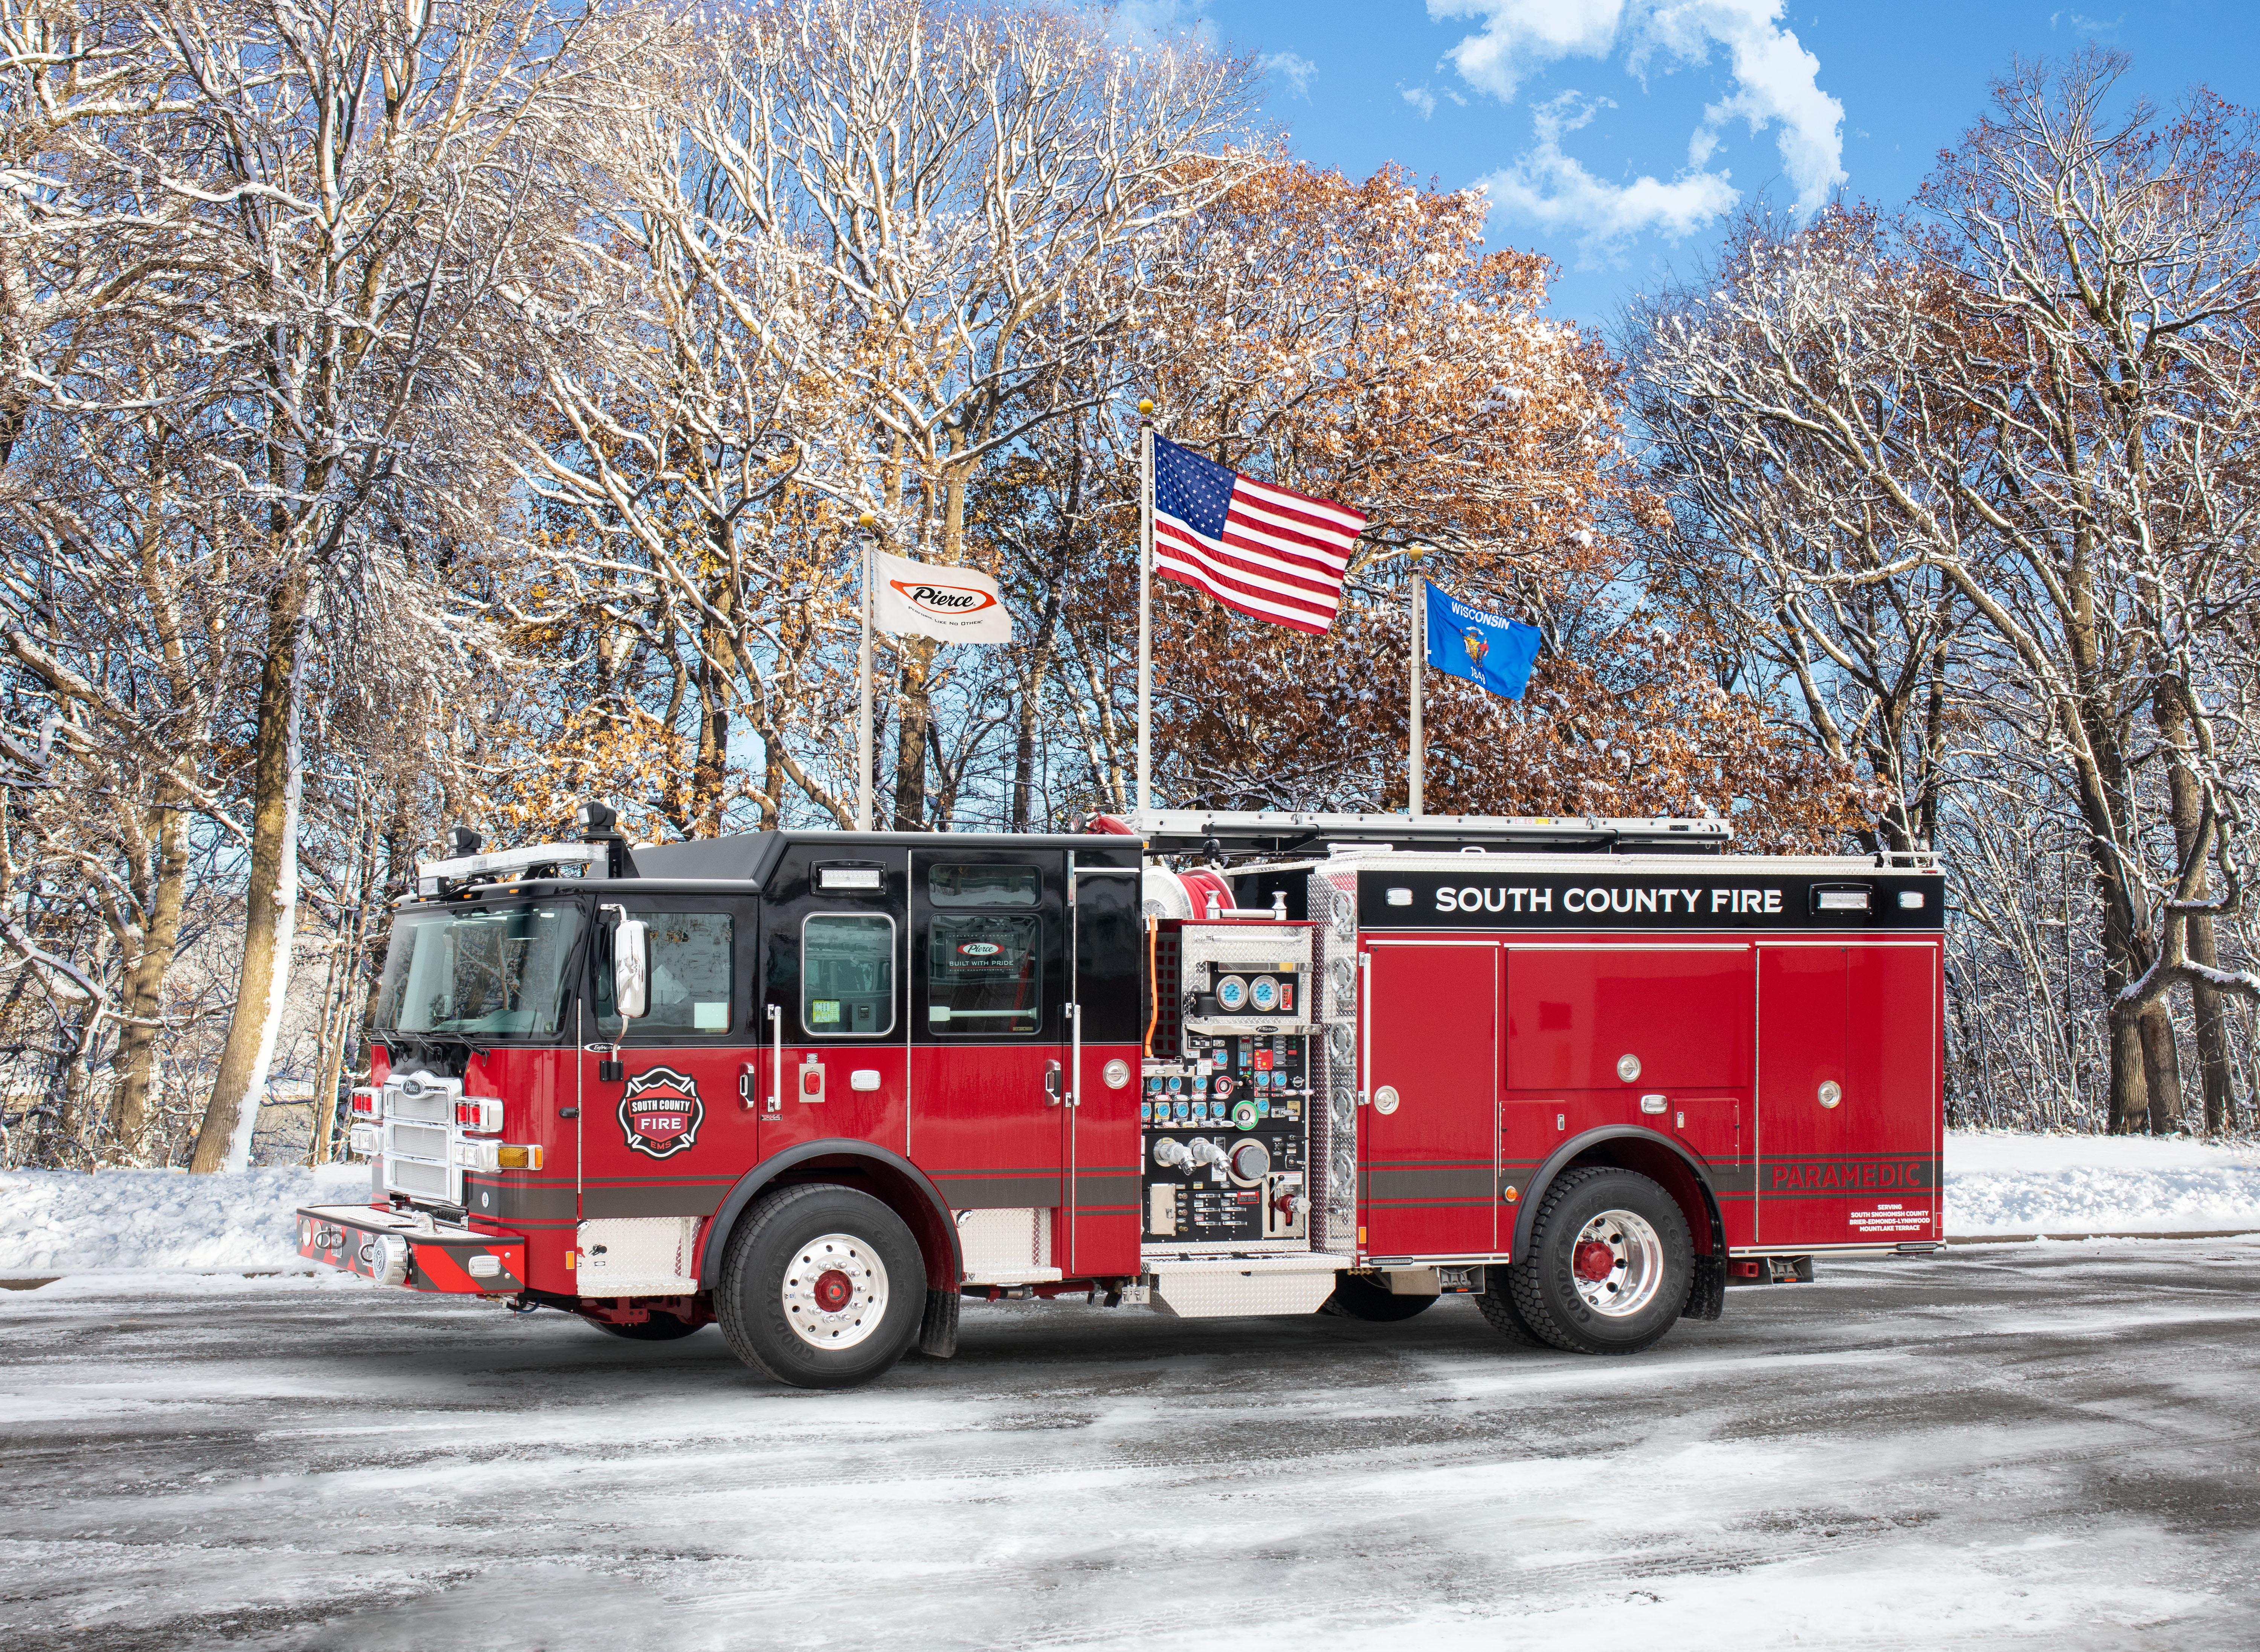 South Snohomish County Fire & Rescue - South Count - Pumper